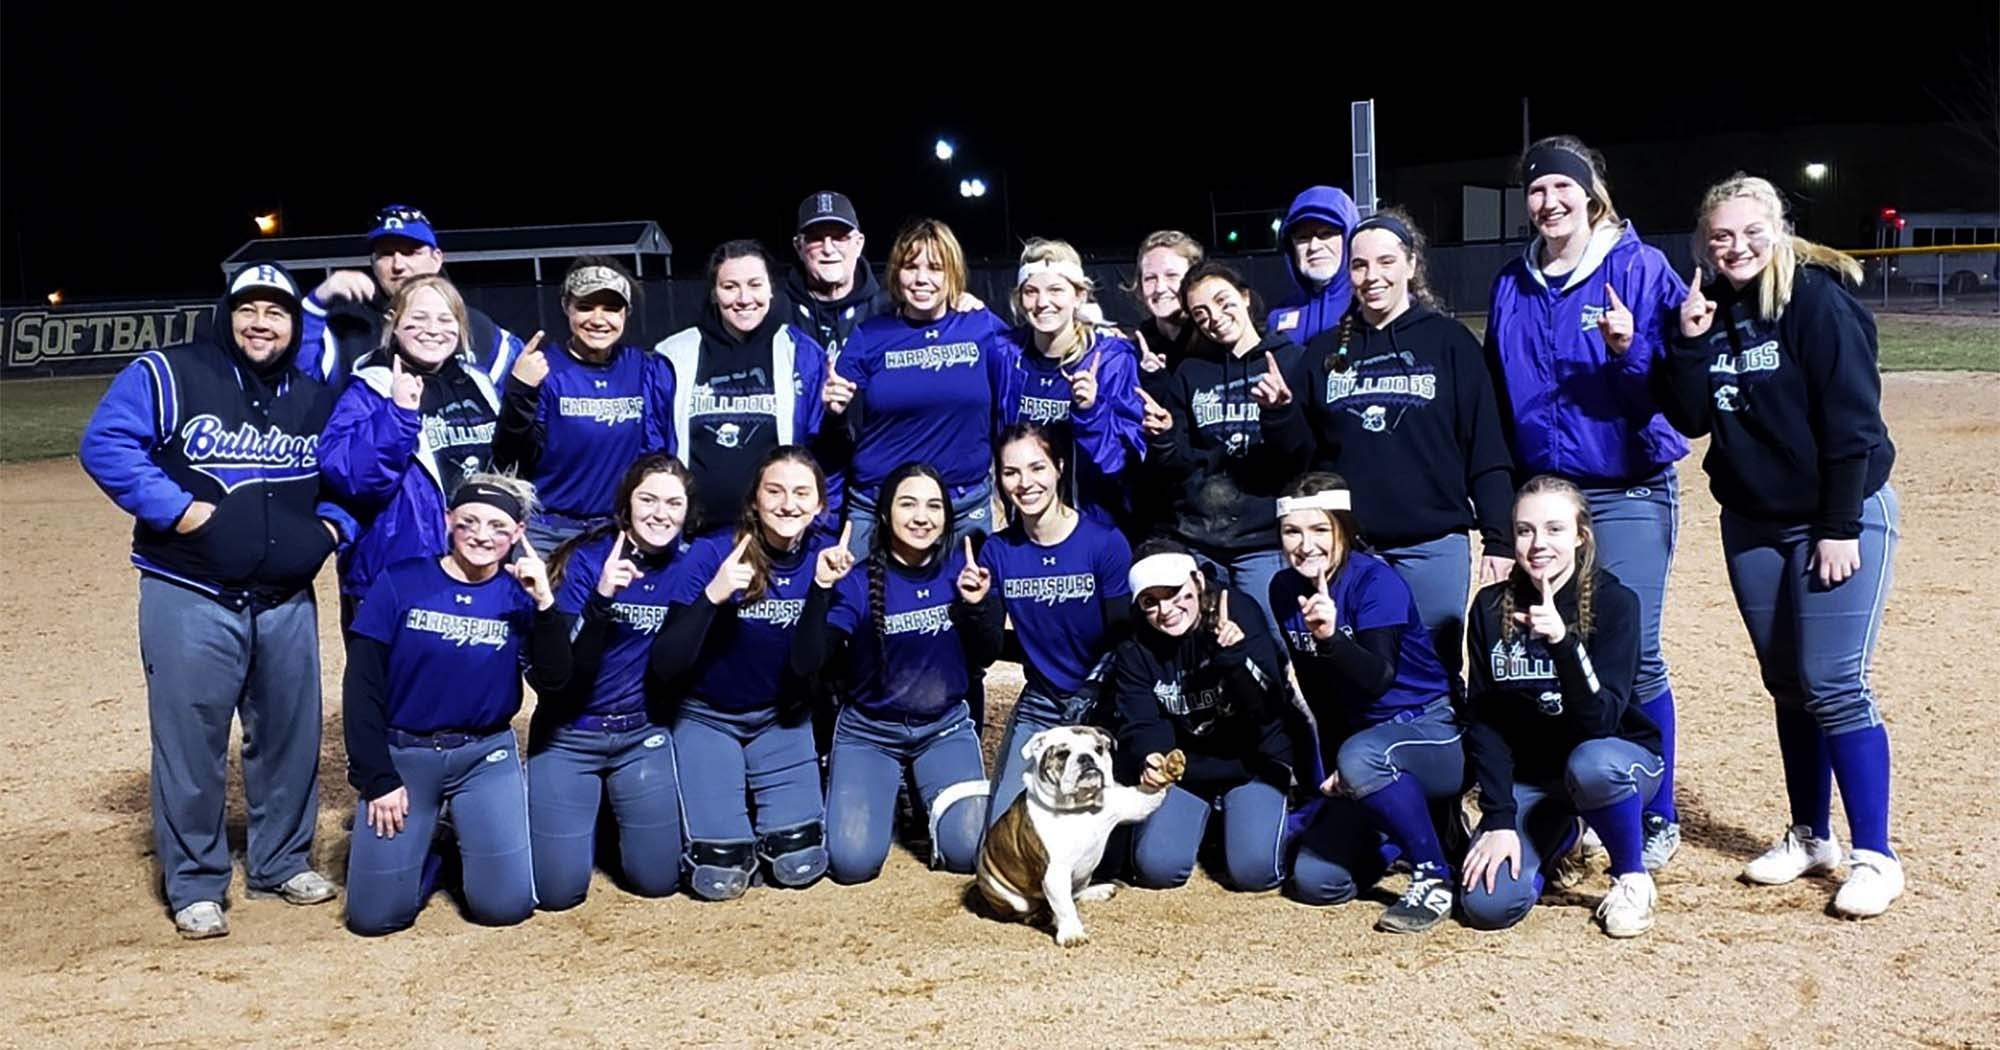 The Harrisburg High School girls' softball team pose after winning the Fairfield Spring Swing over the weekend.